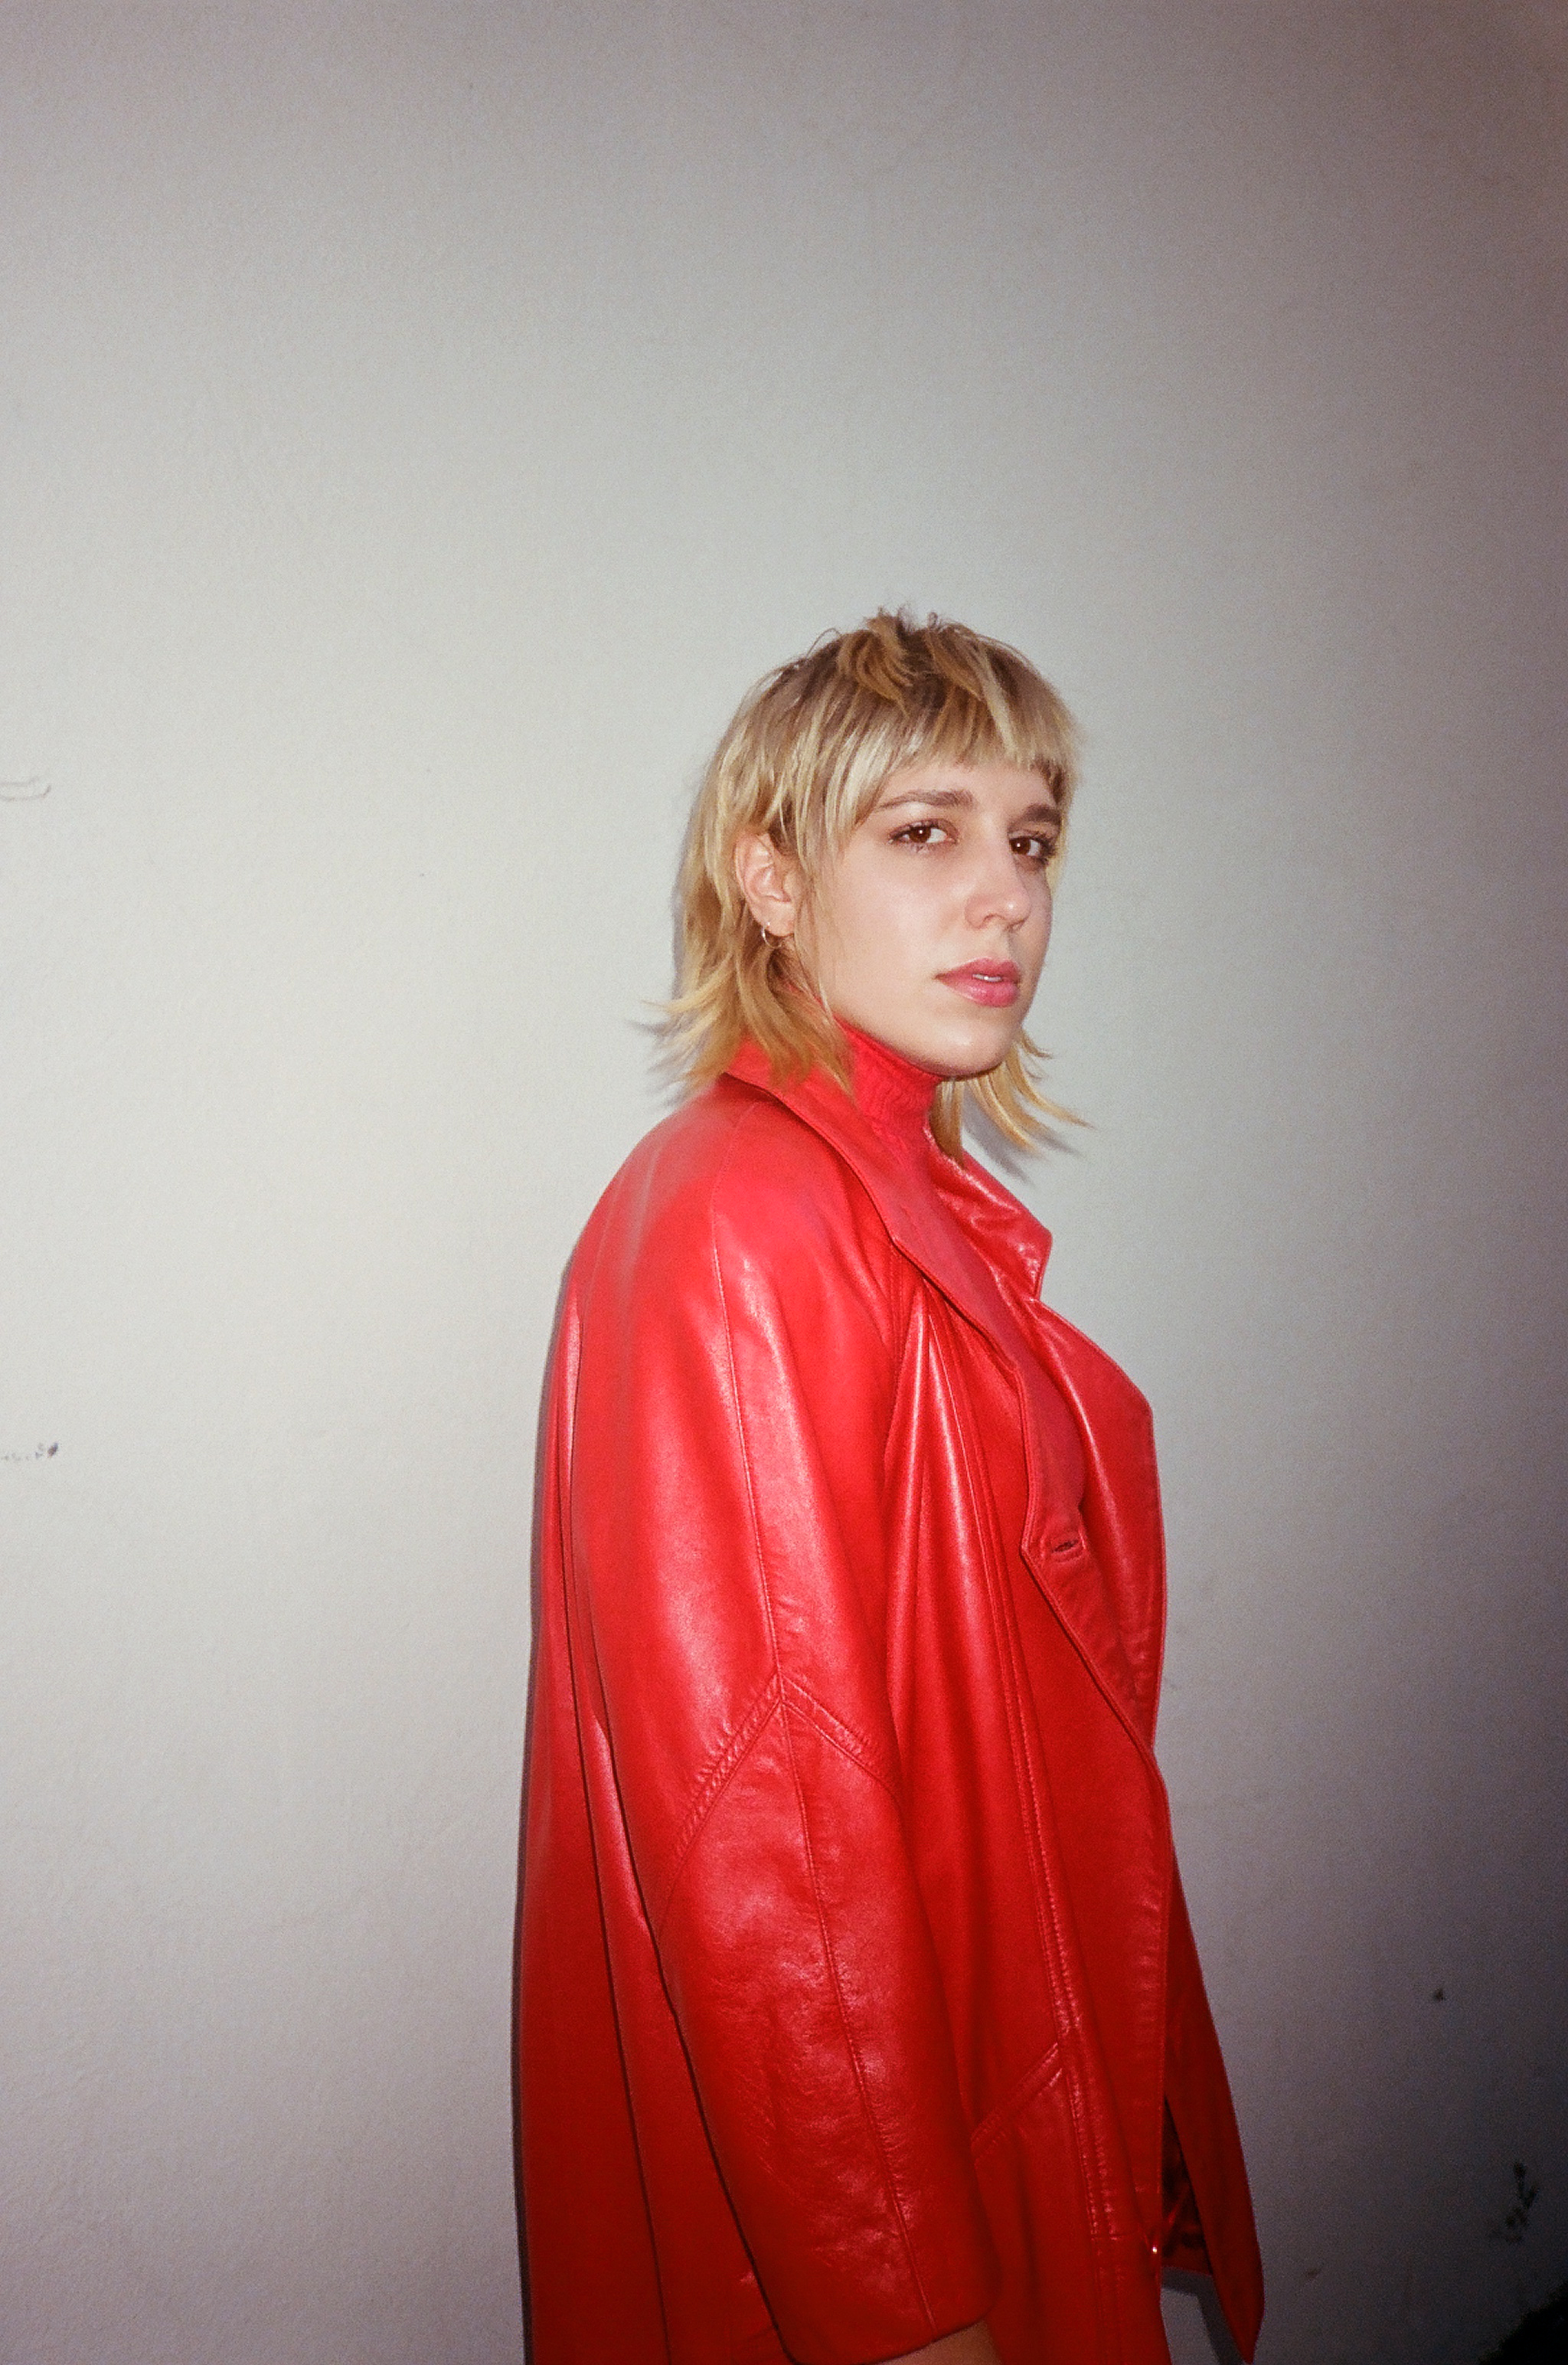 Abby wears  Vintage Debby's Red Leather Jacket .